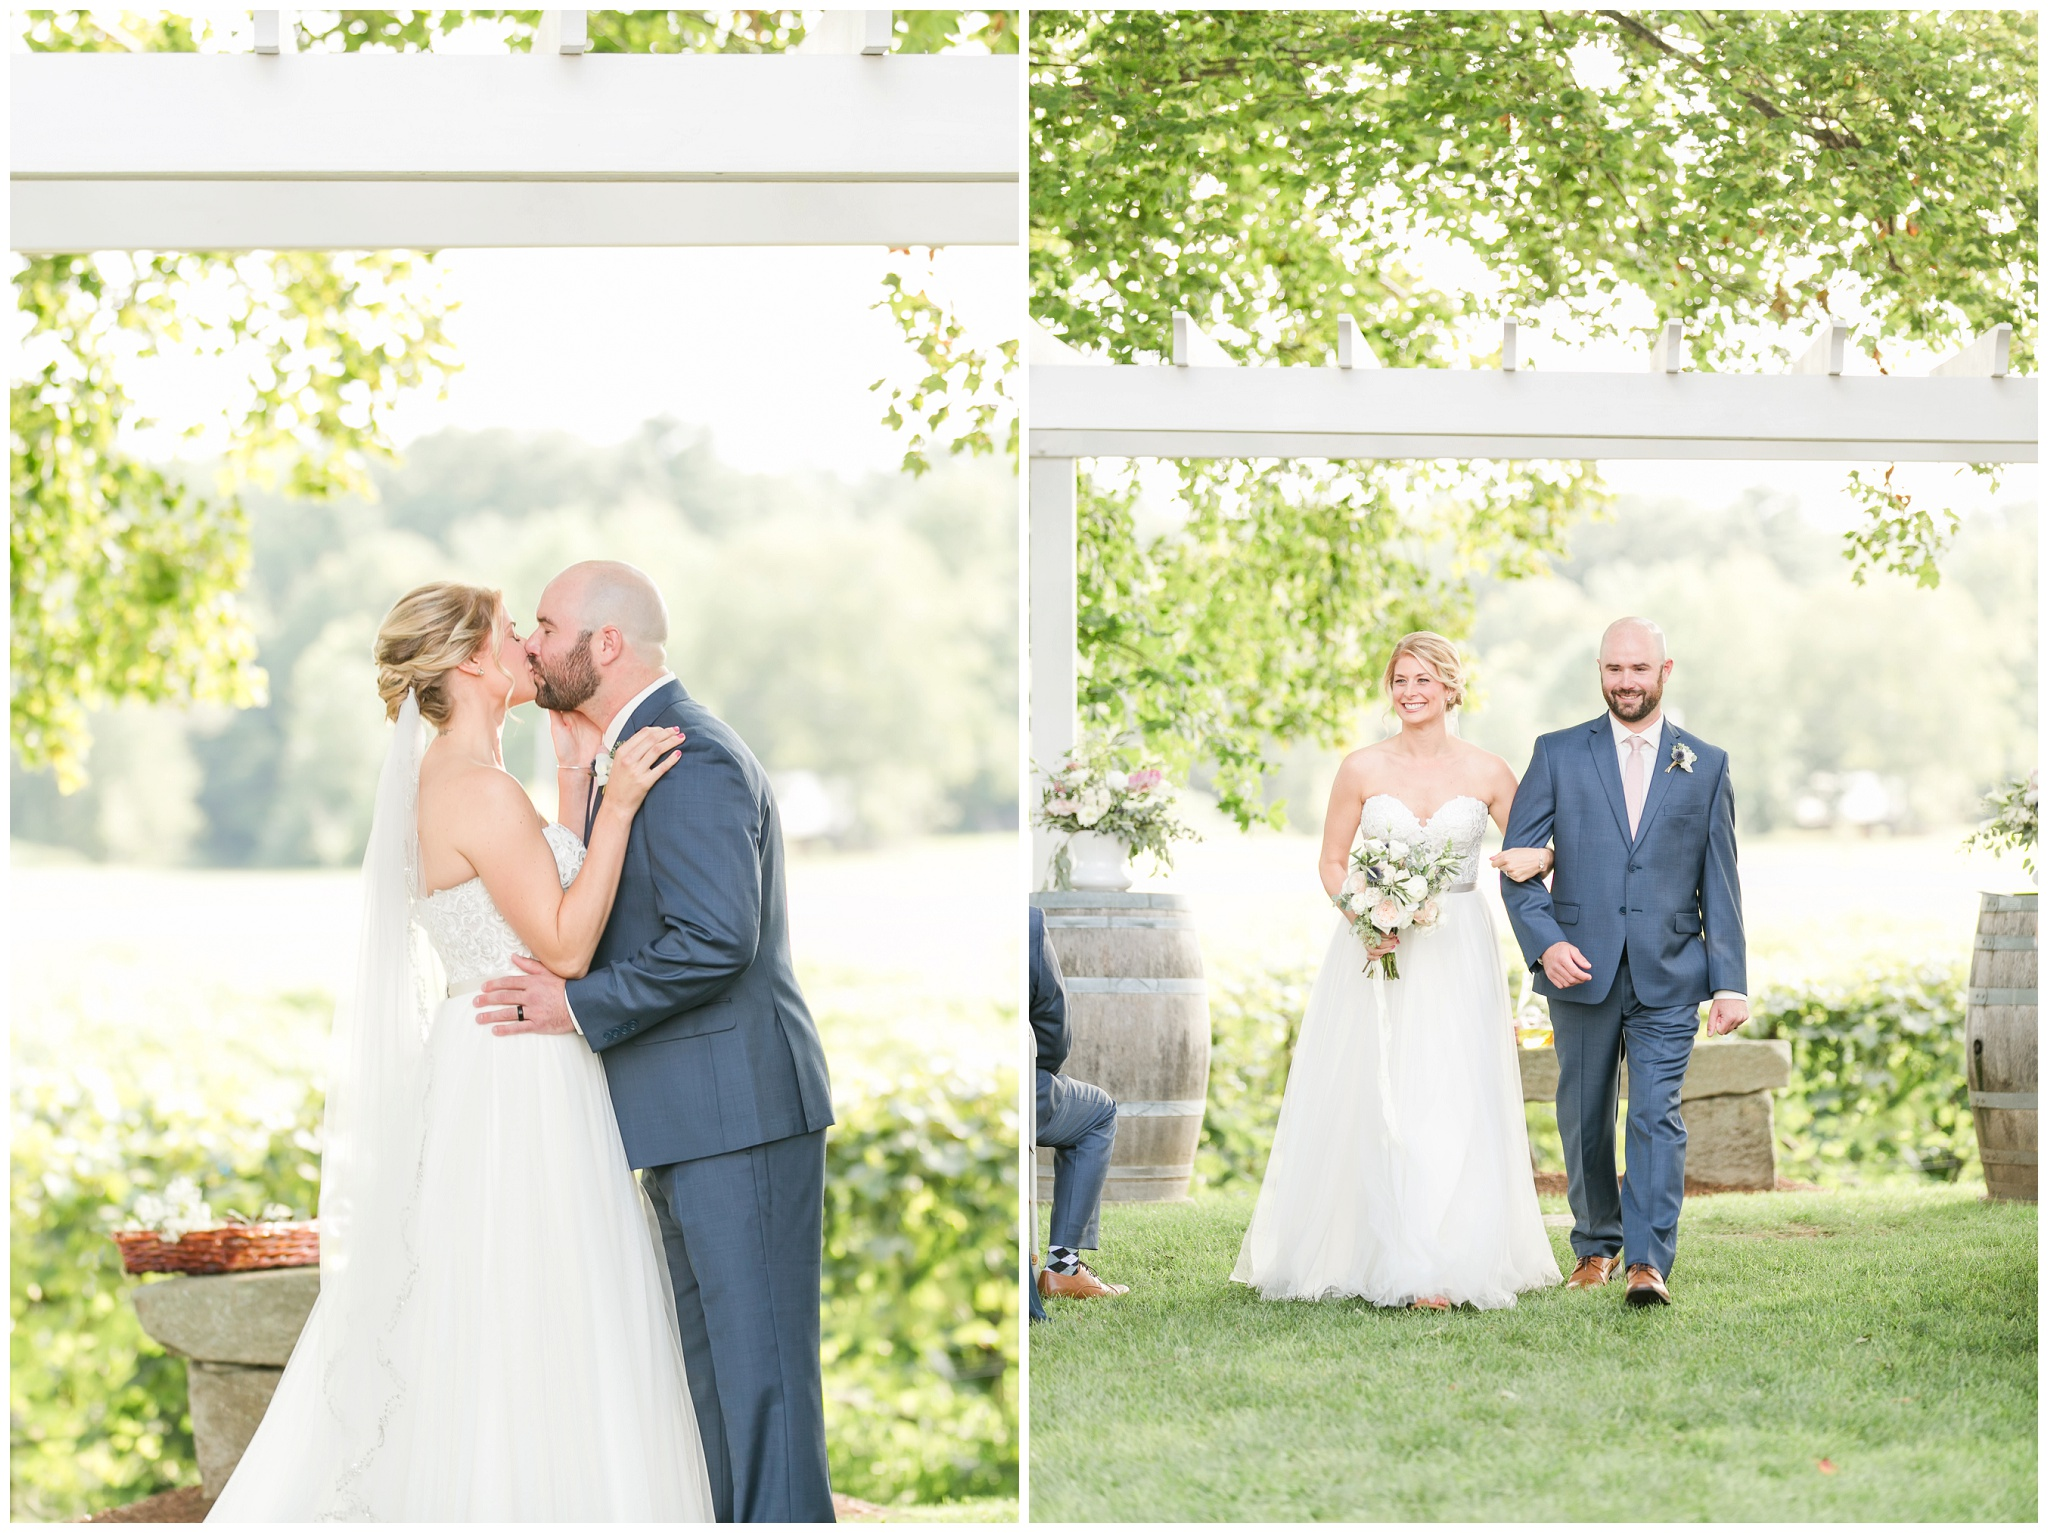 New Hampshire Wedding Photographer | Amy Brown Photography | Flag Hill Winery Outdoor NH Wedding